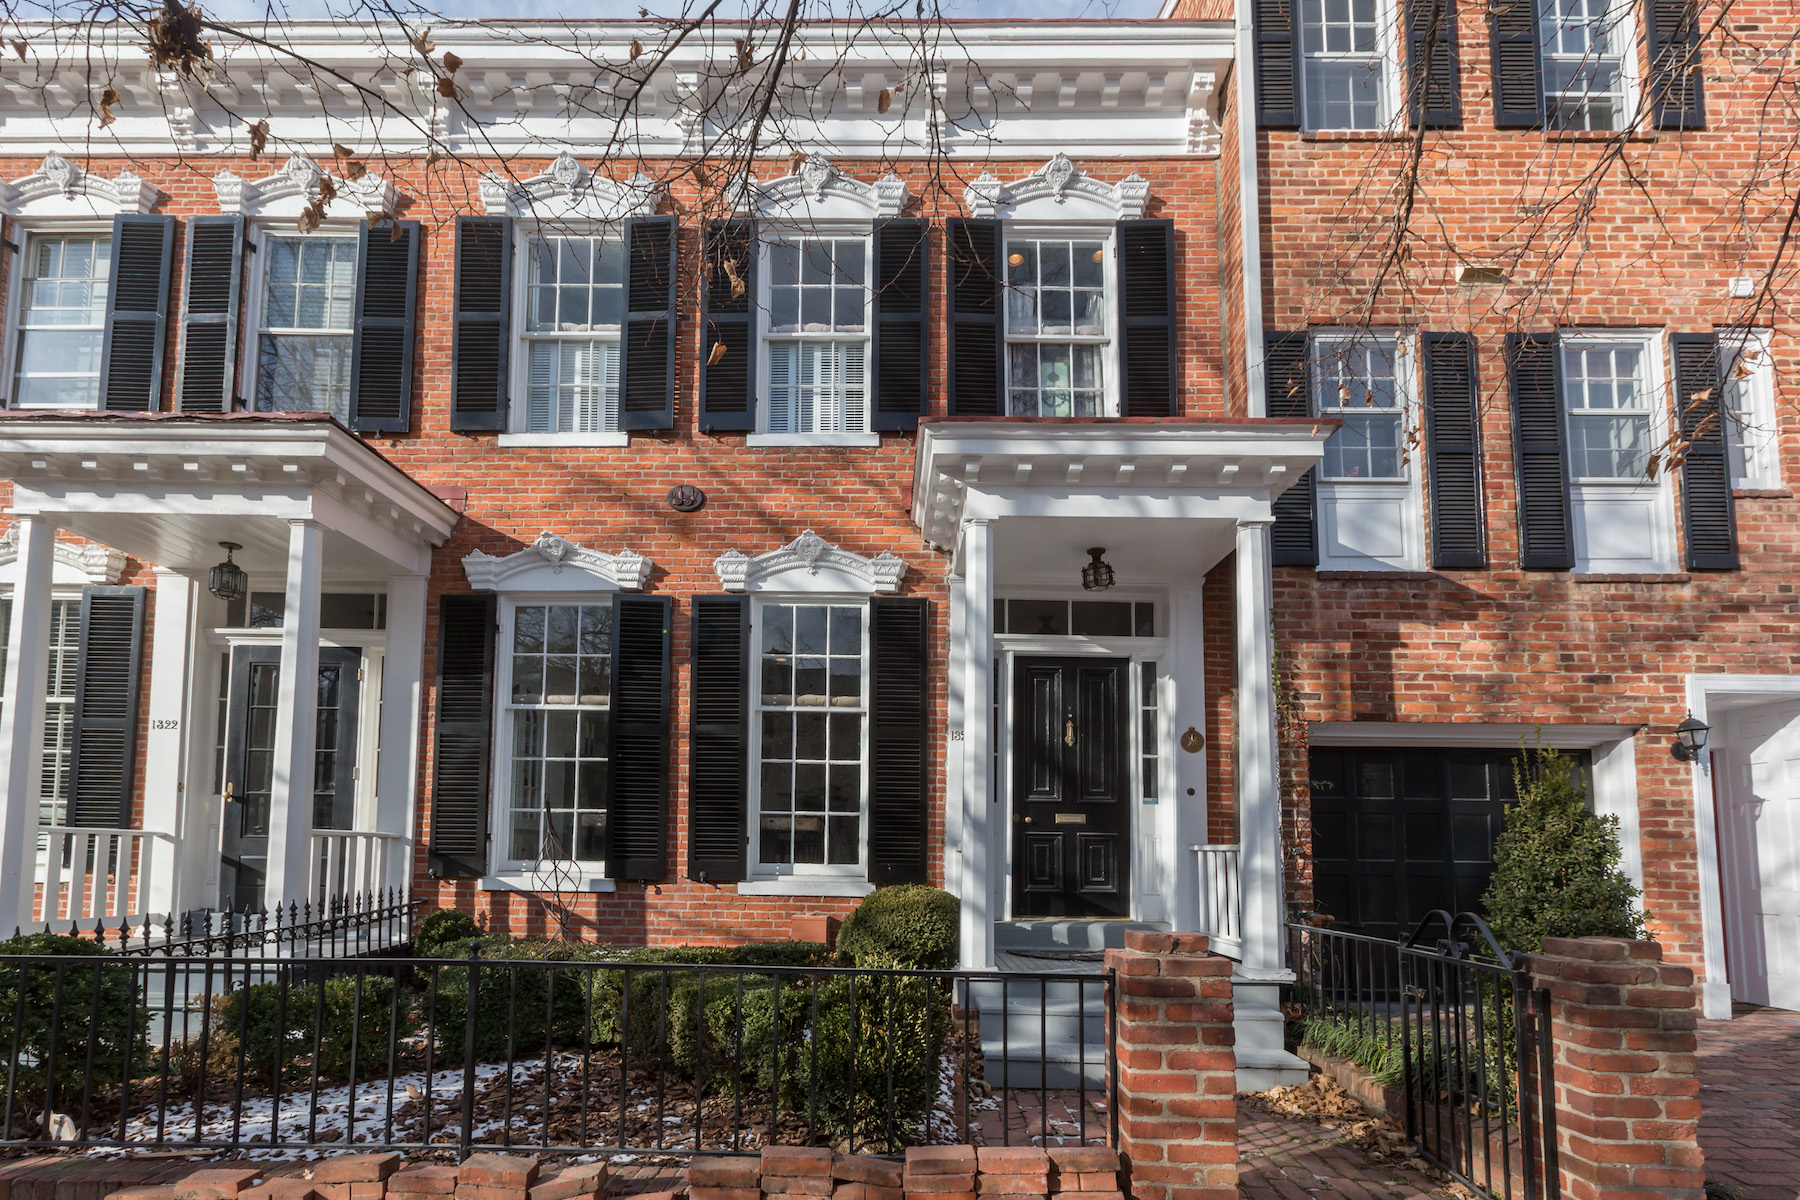 Casa unifamiliar adosada (Townhouse) por un Alquiler en Georgetown 1324 30th Street Nw Washington, Distrito De Columbia 20007 Estados Unidos